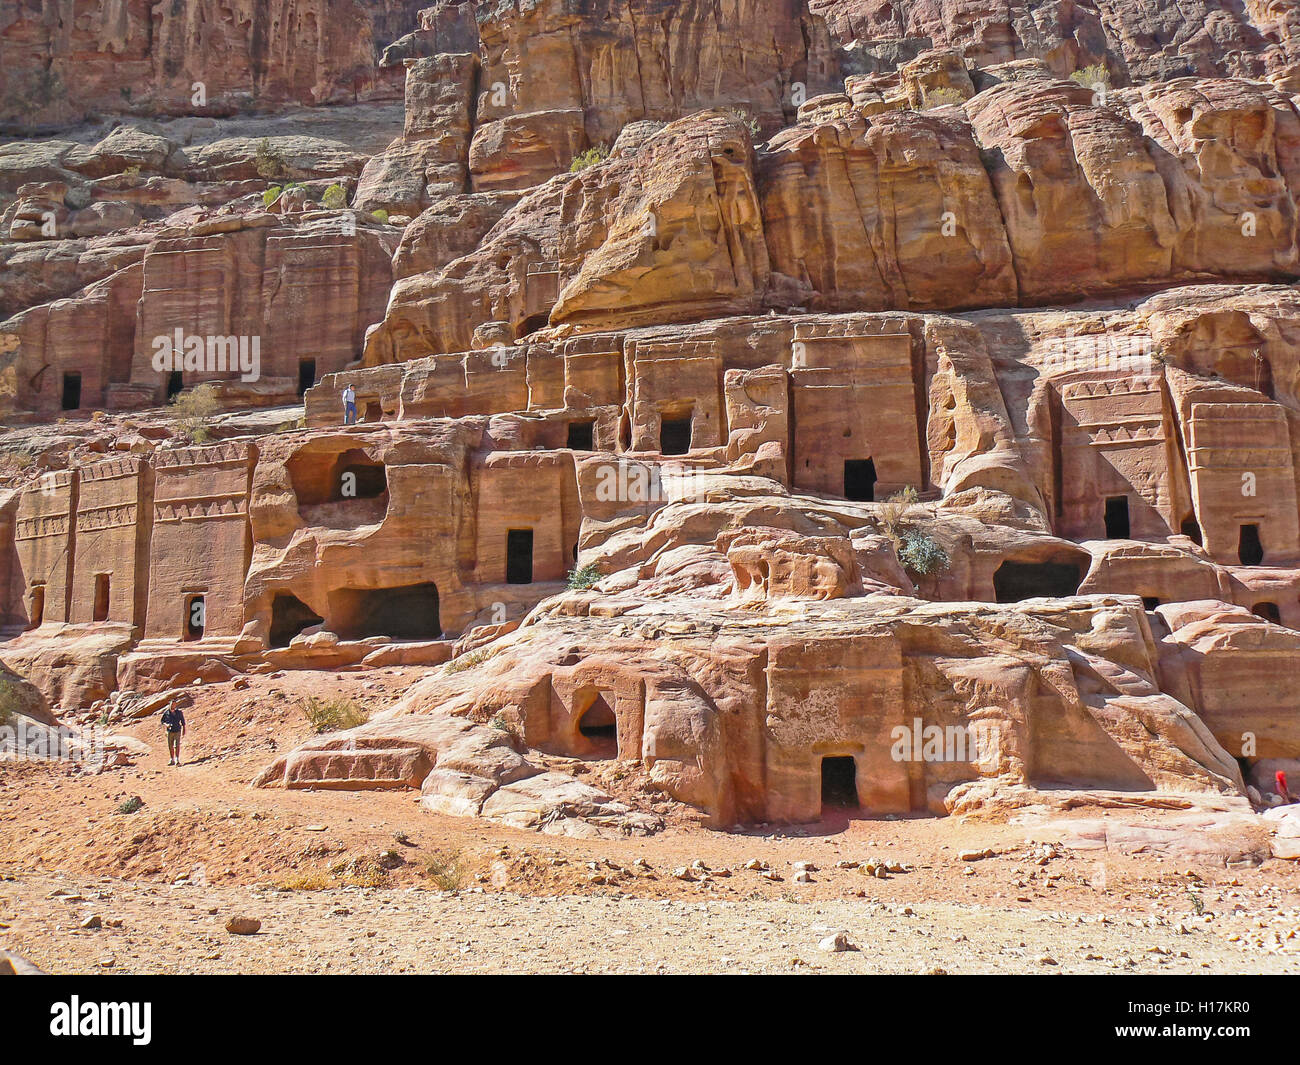 Street of Facades, Tombs of Petra, Jordan - Stock Image